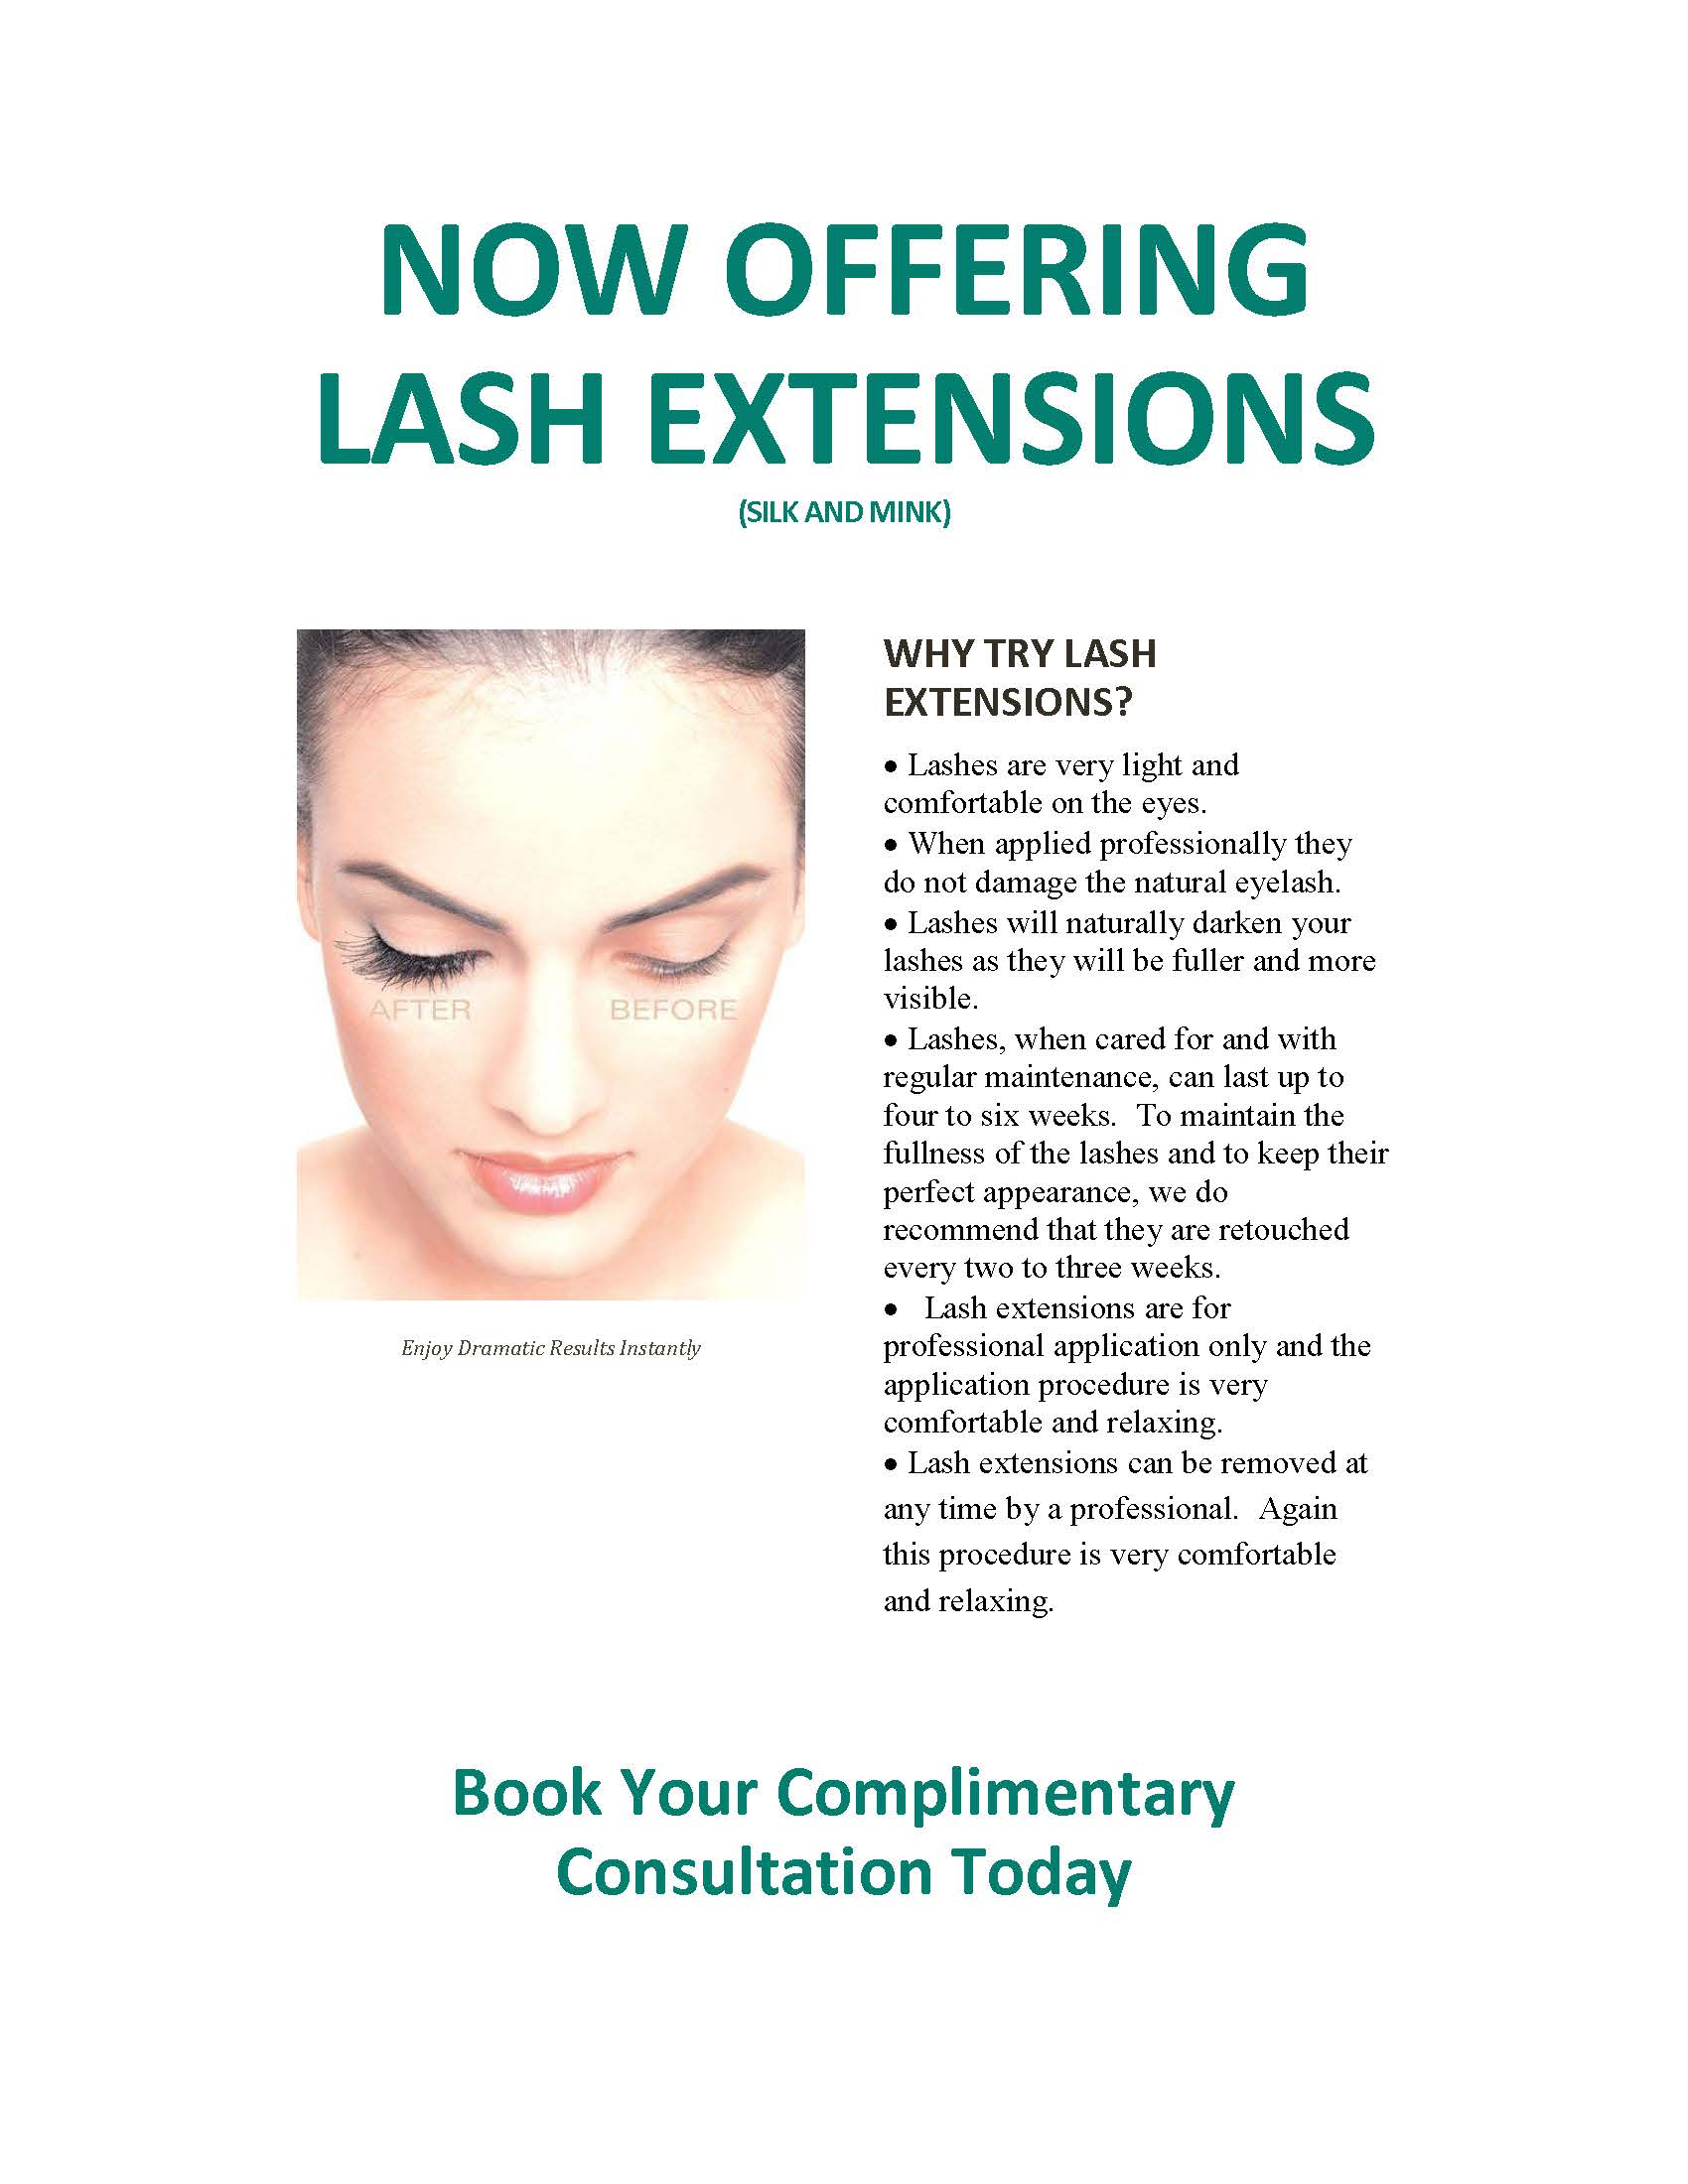 Now Offering Lash Extensions